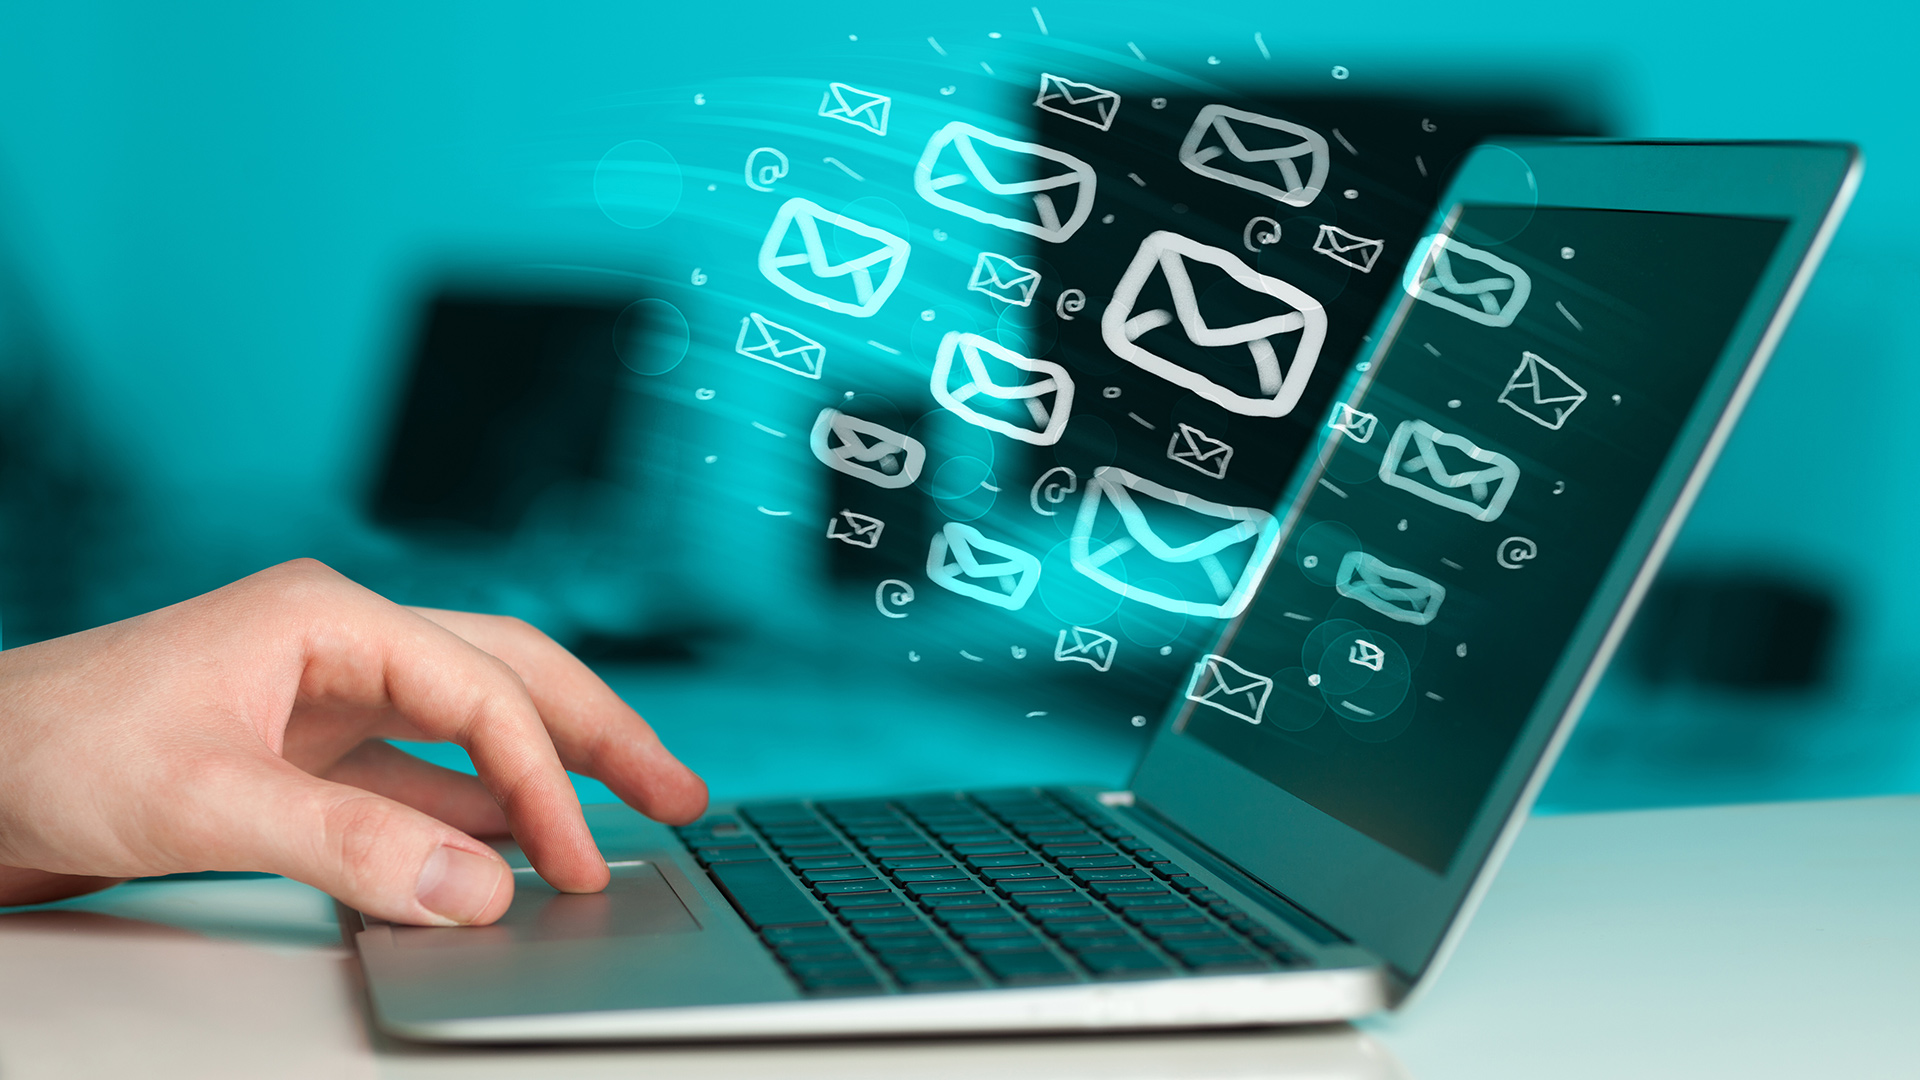 give 1.7 Billion Worldwide email lists